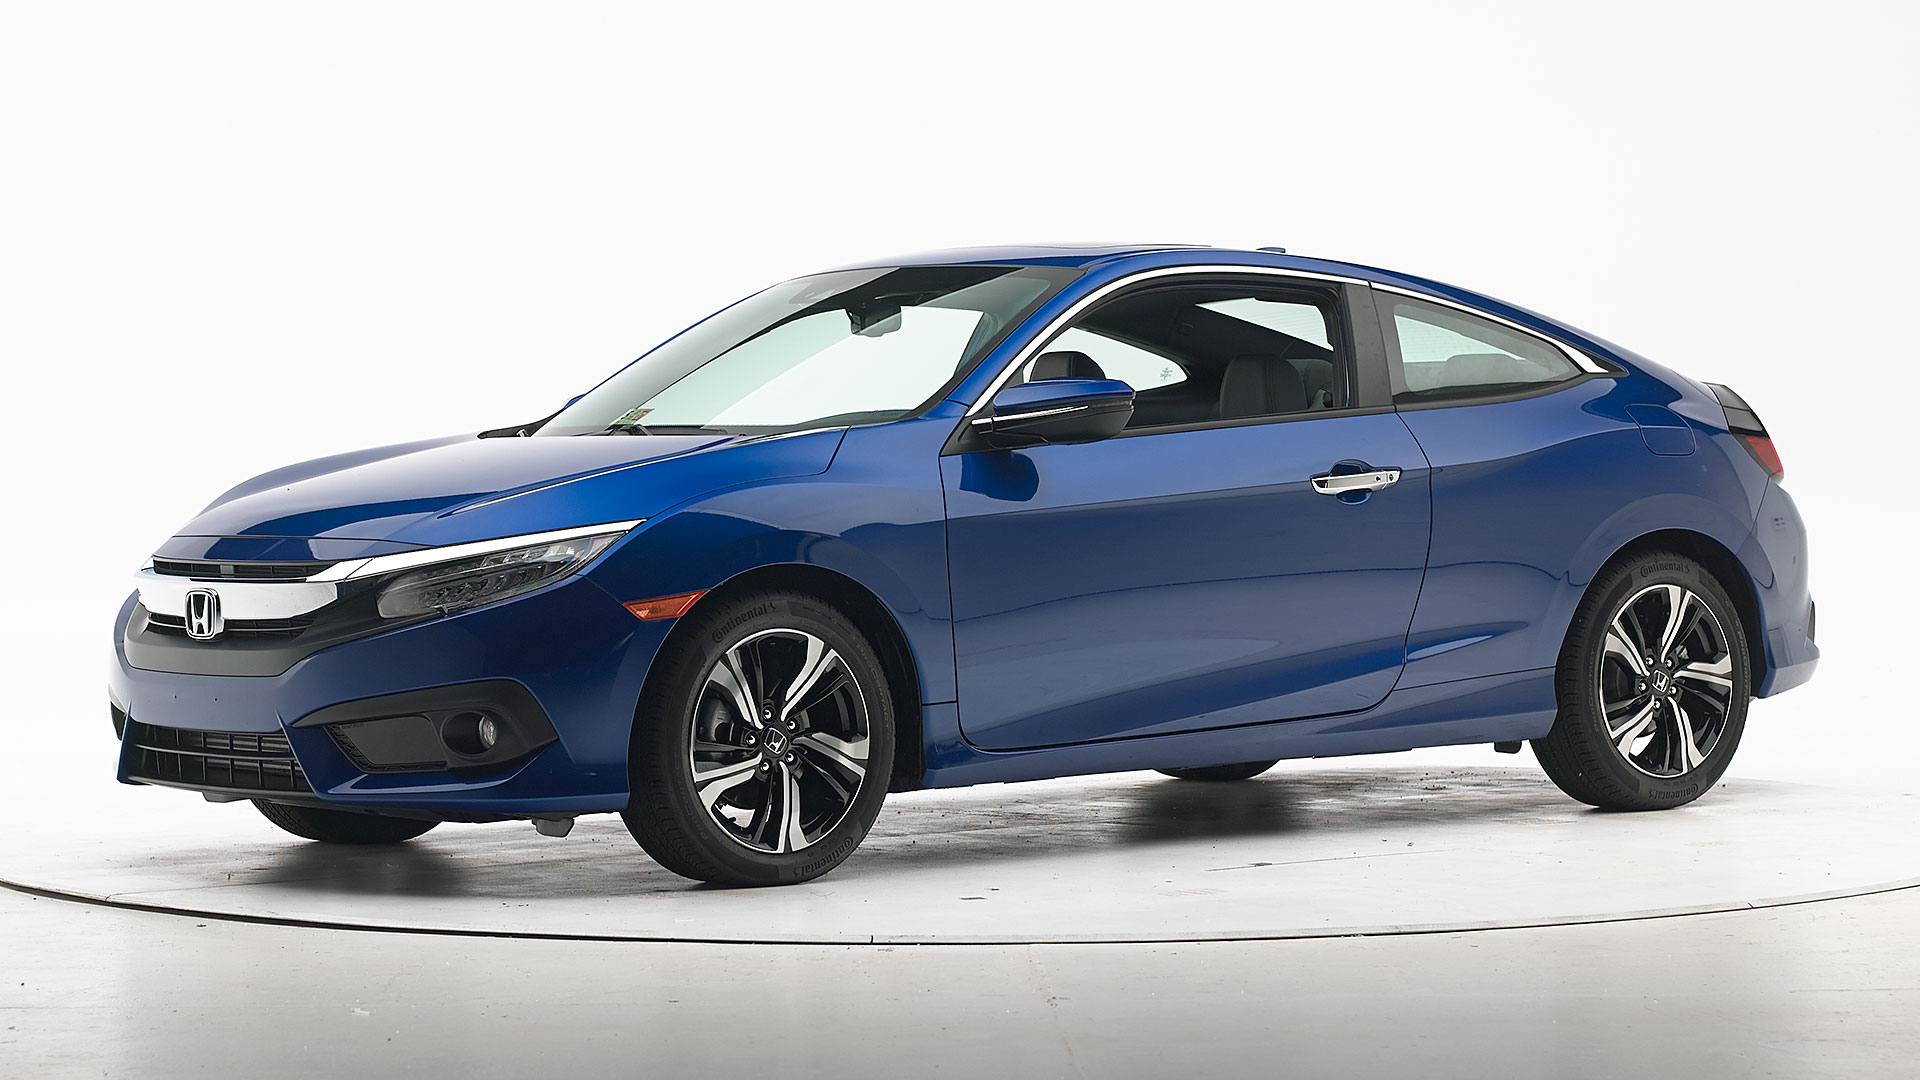 2018 Honda Civic 2-door coupe